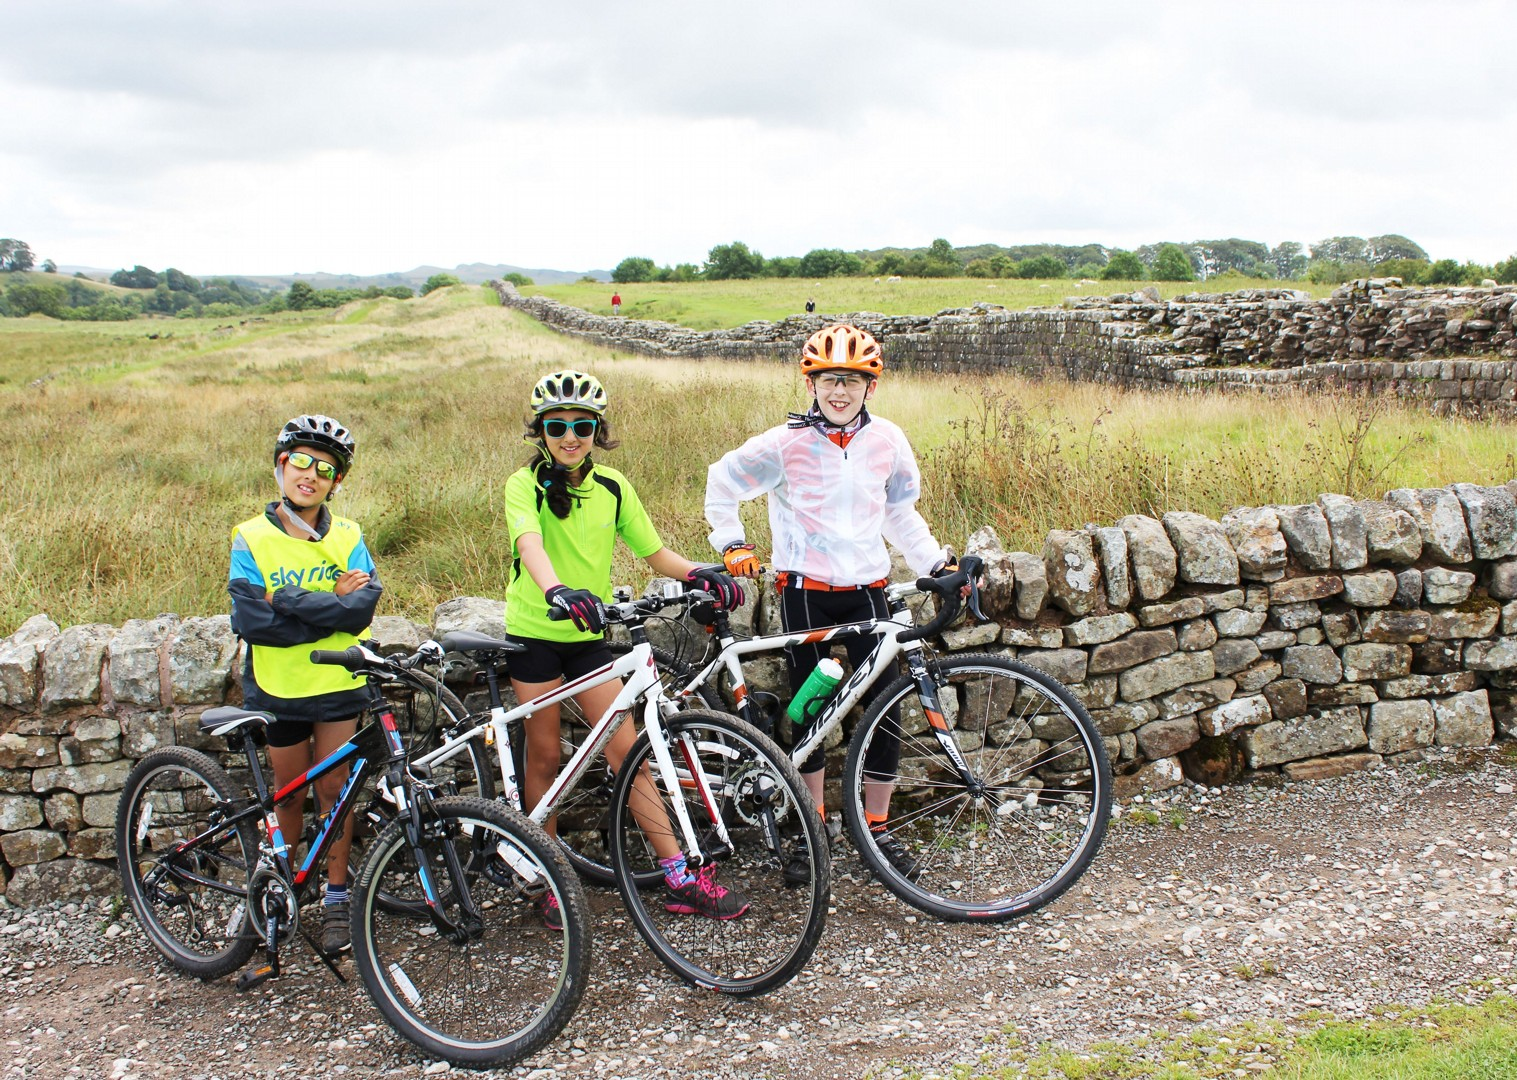 uk-hadrians-explorer-cycling-holiday.jpg - UK - Highlights of Hadrian's Cycleway - Self-Guided Family Cycling Holiday - Family Cycling